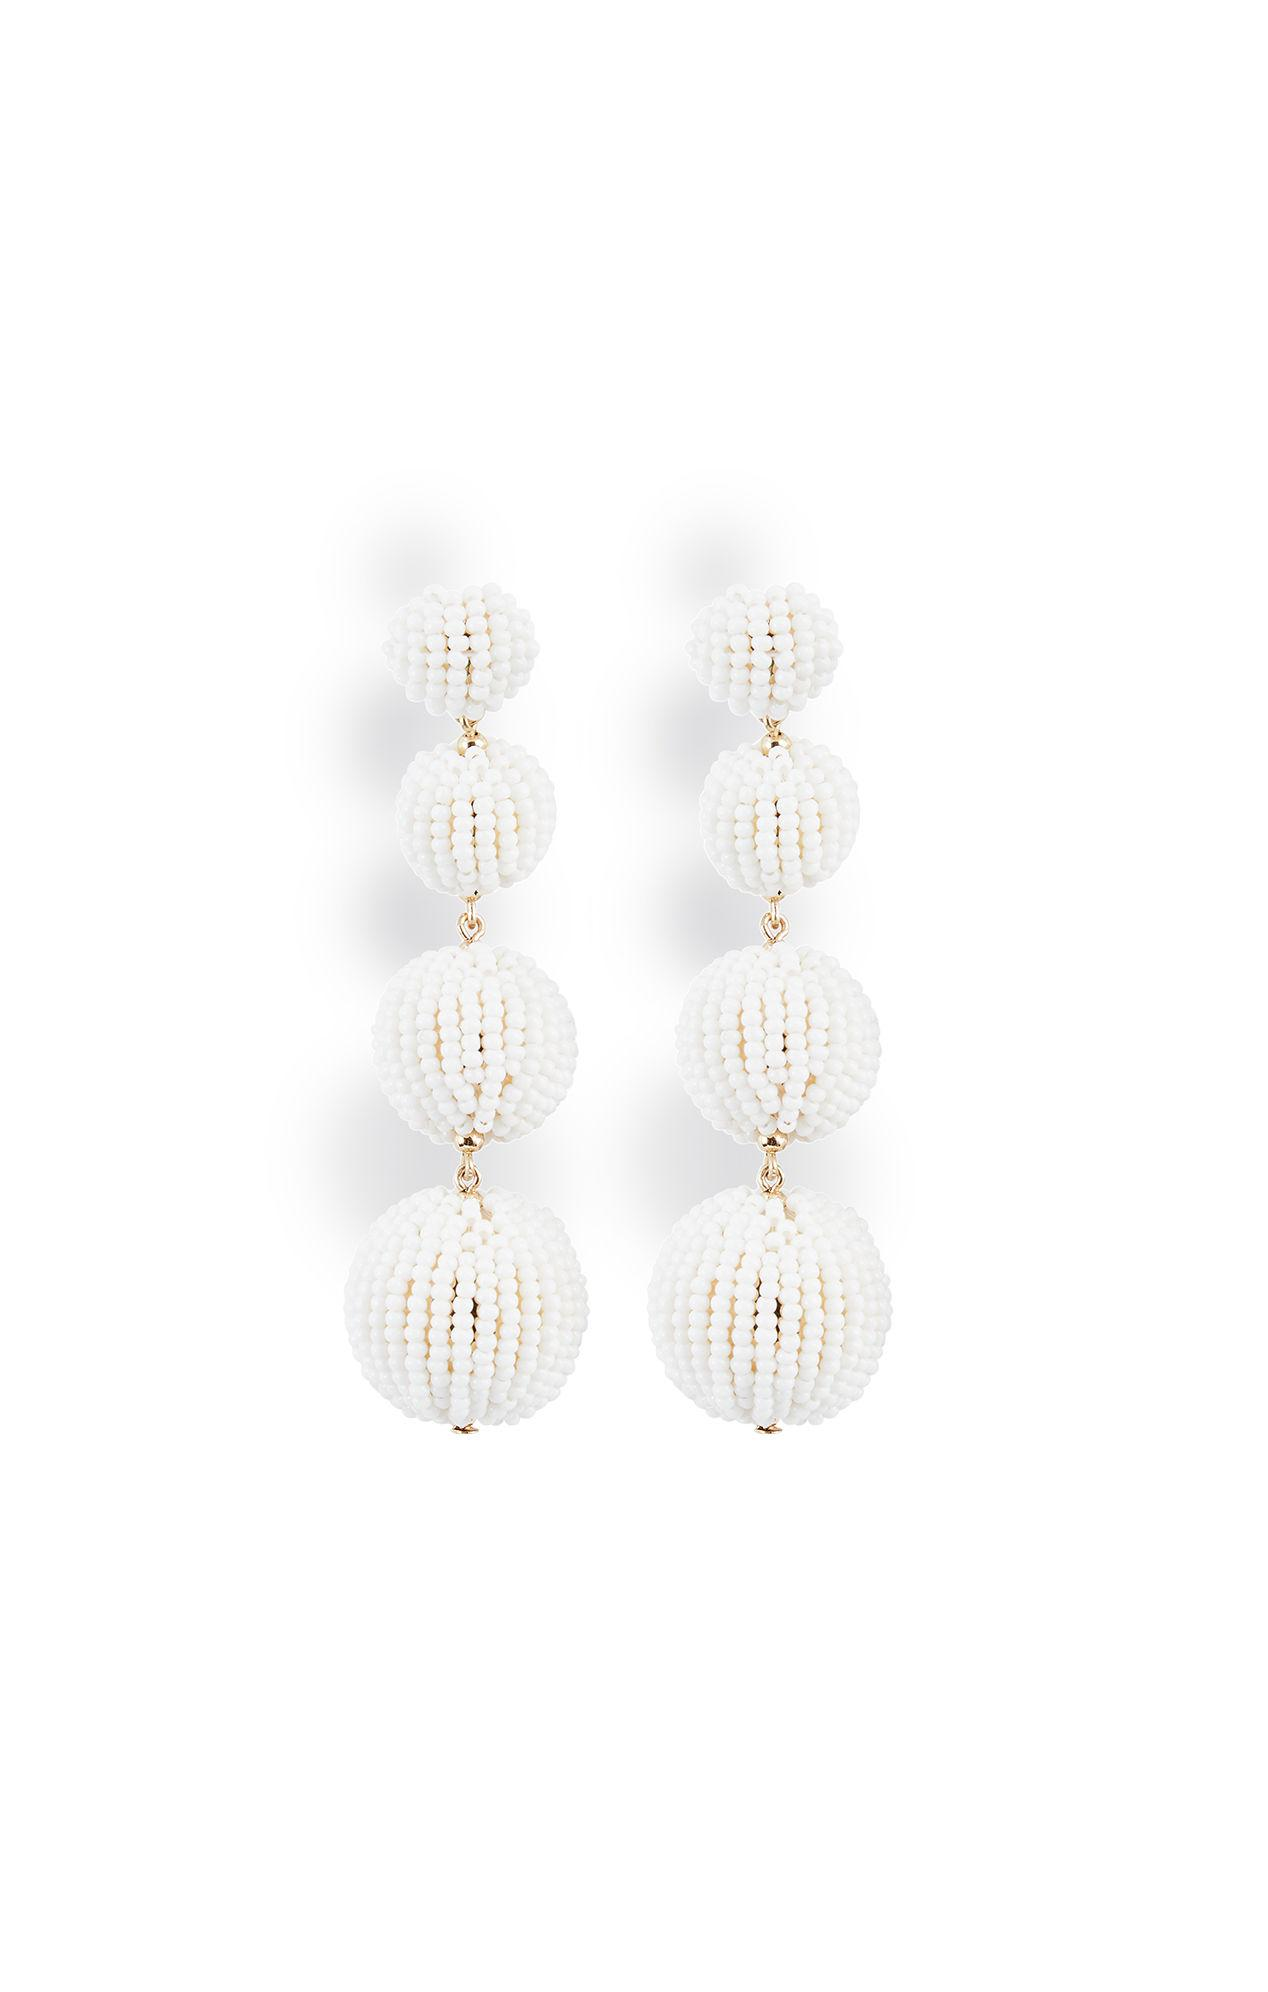 alina teardrop s beaded alinas earrings silver with white stud accents